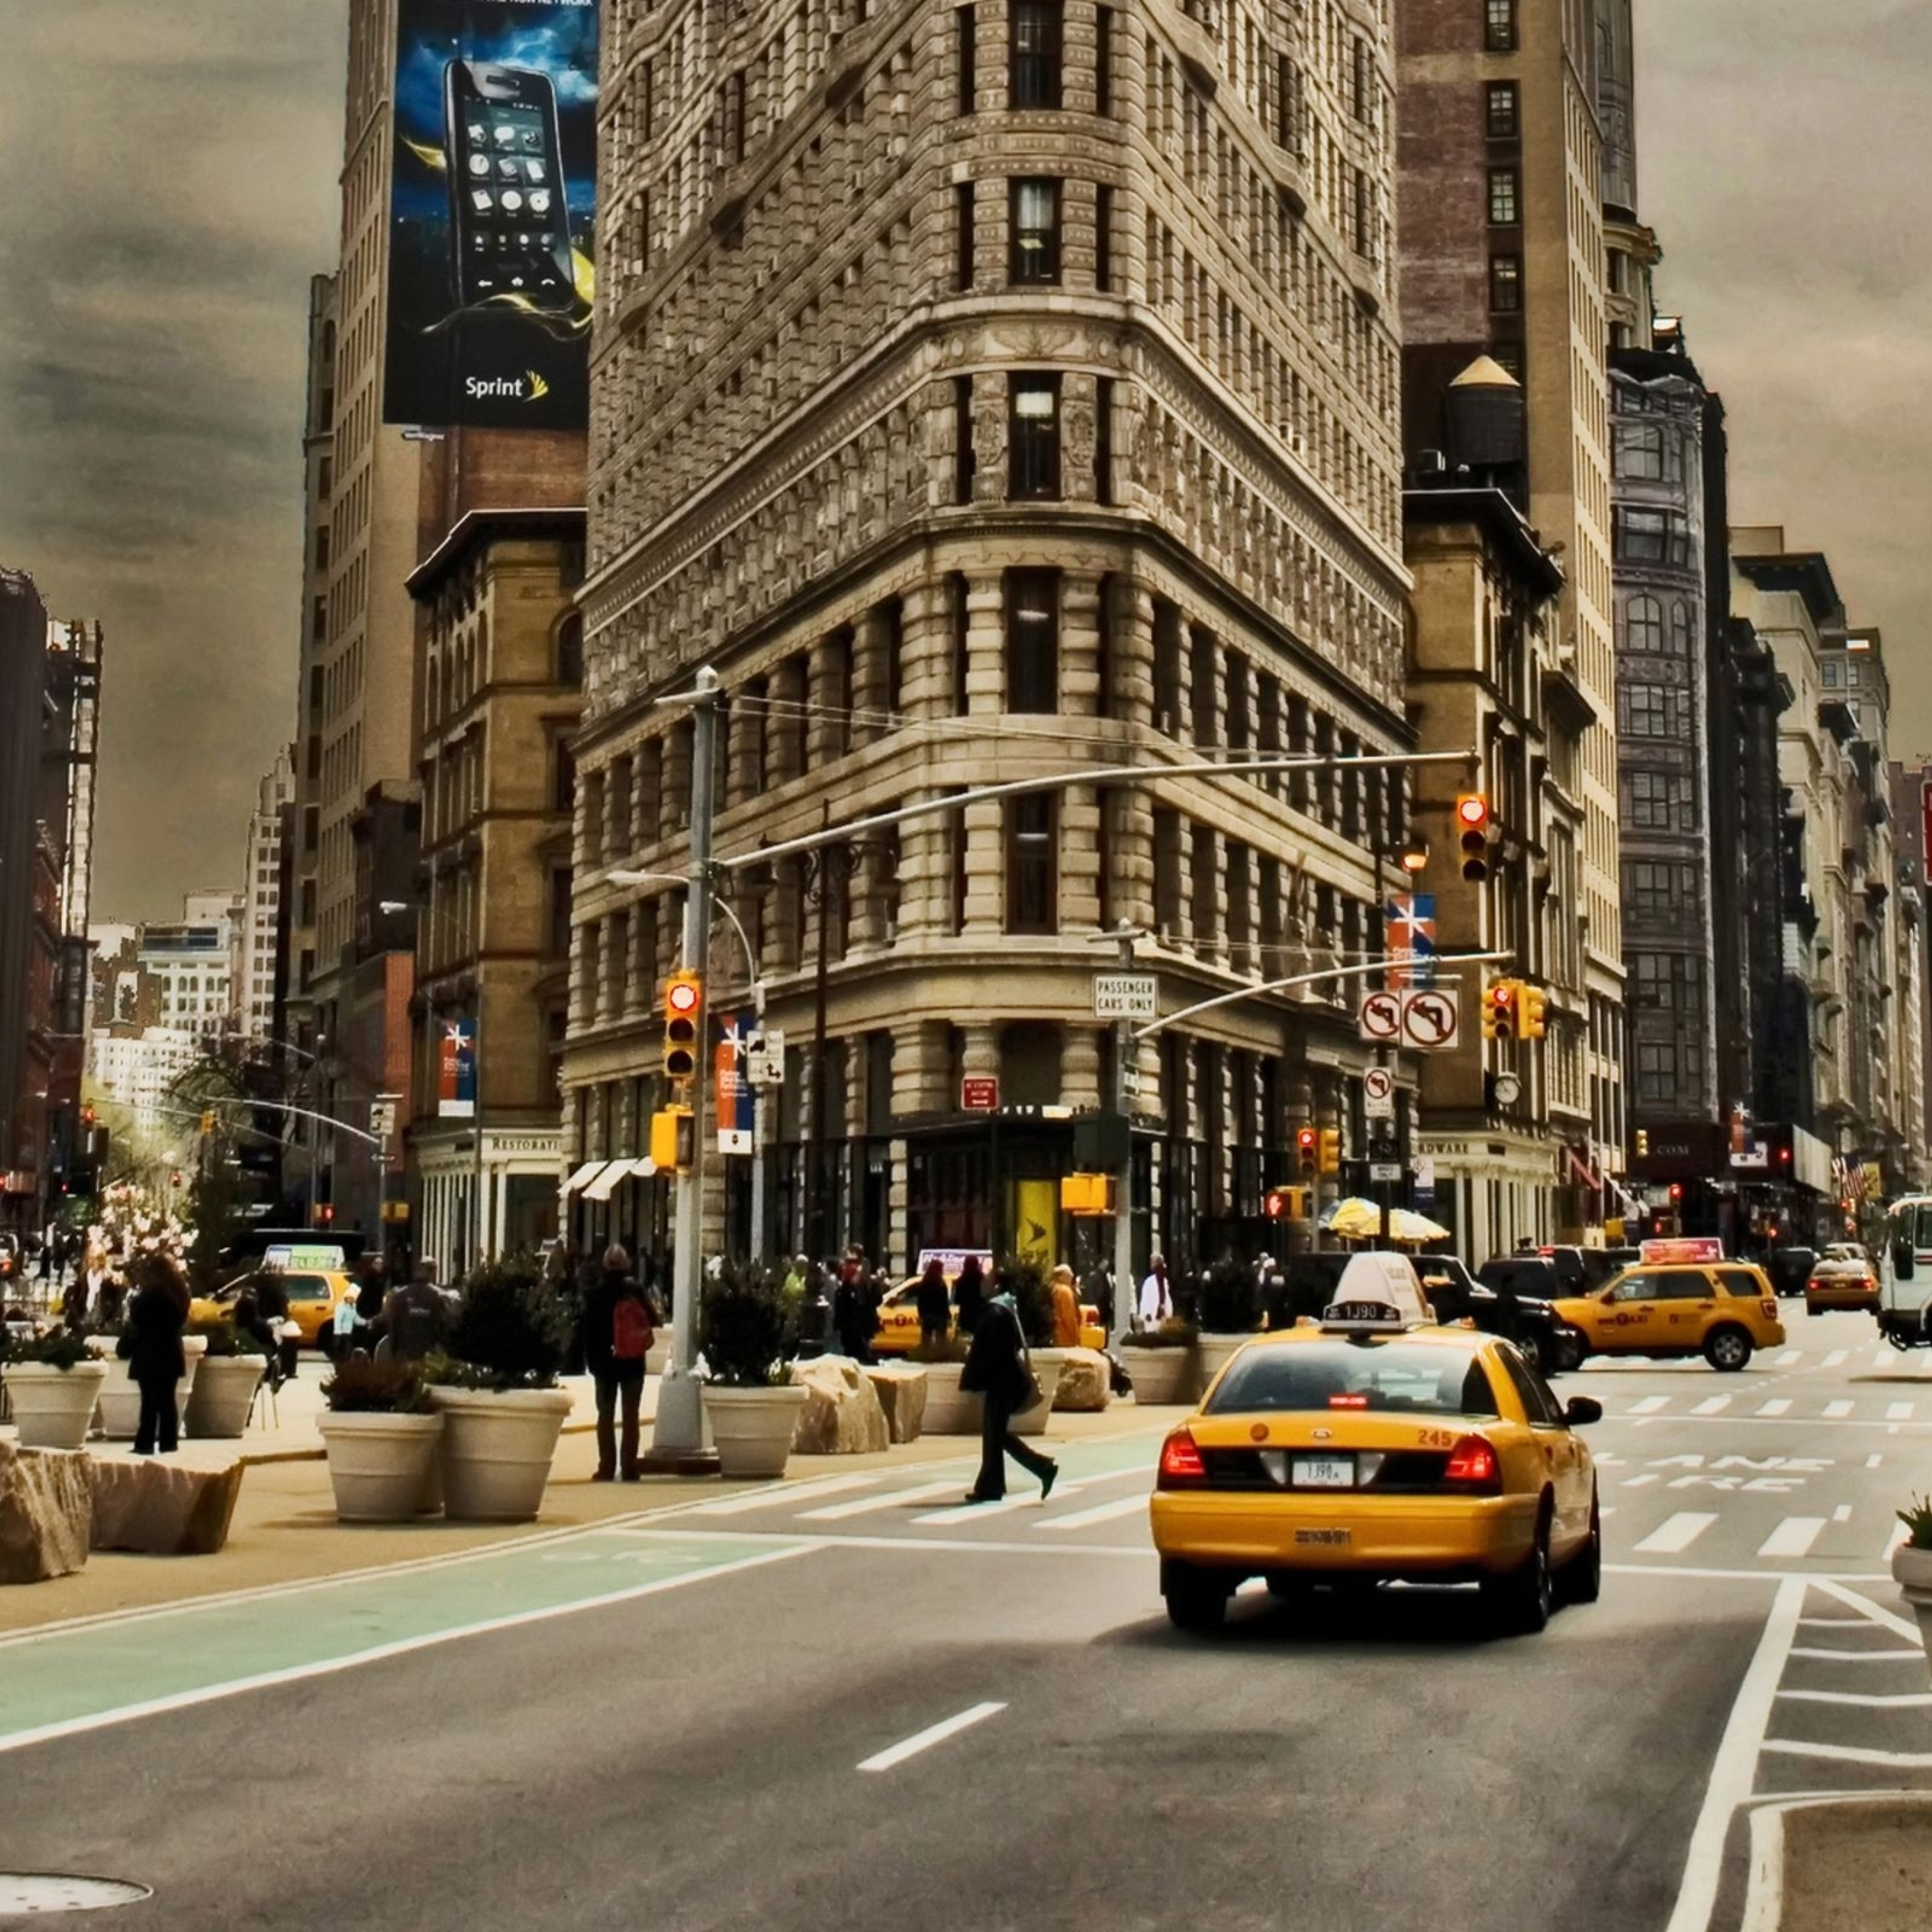 how to find my iphone new york city building hd 2k wallpaper 17153